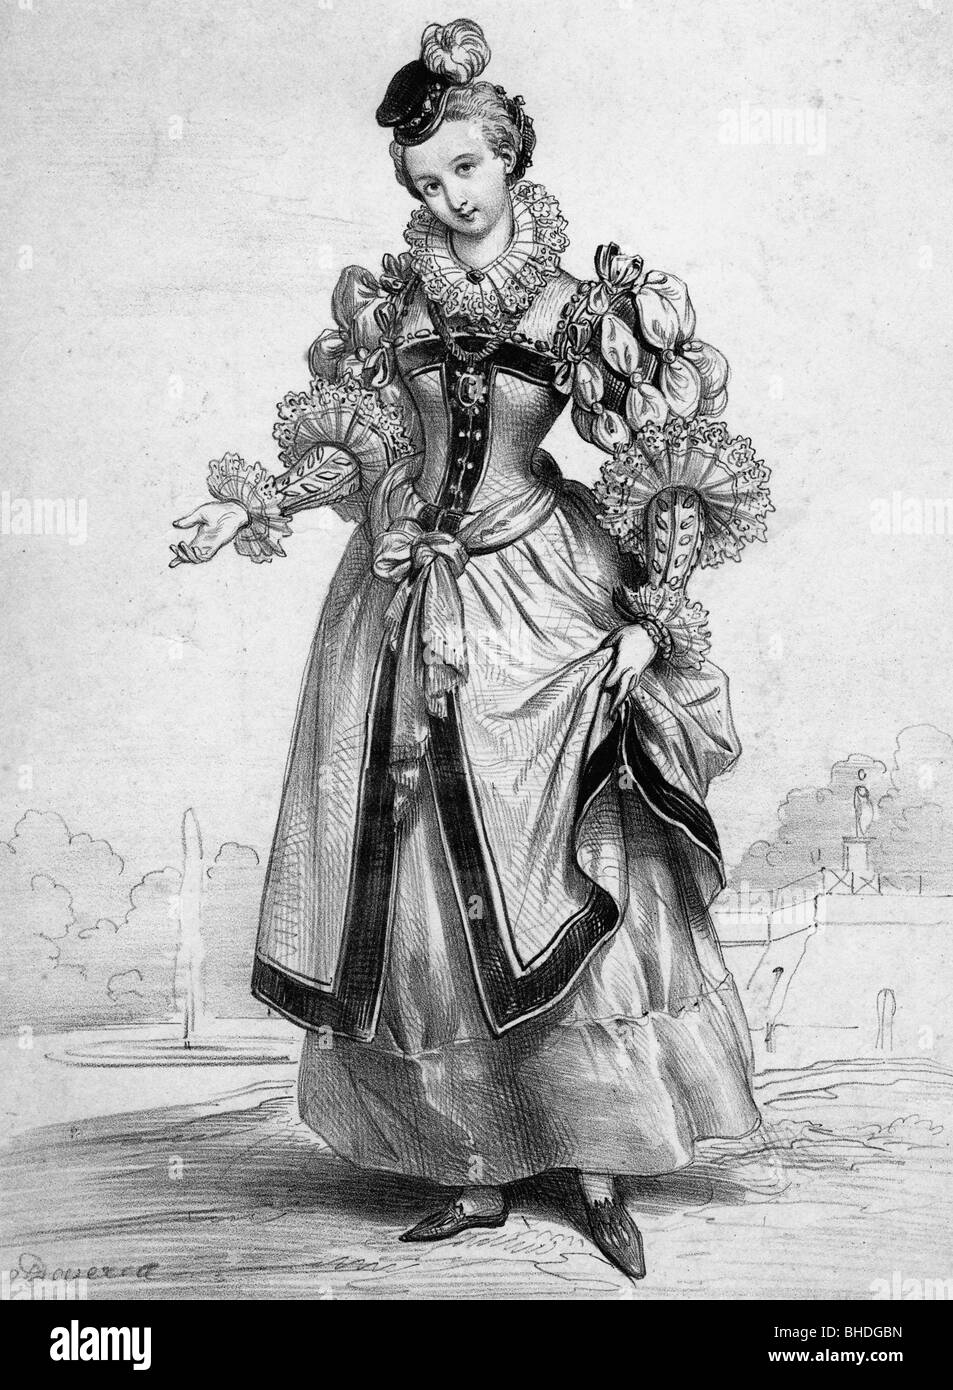 fashion, 16th century, German costume image, after contemporary lithograph by Deveria and Lemercier, historic, historical, - Stock Image